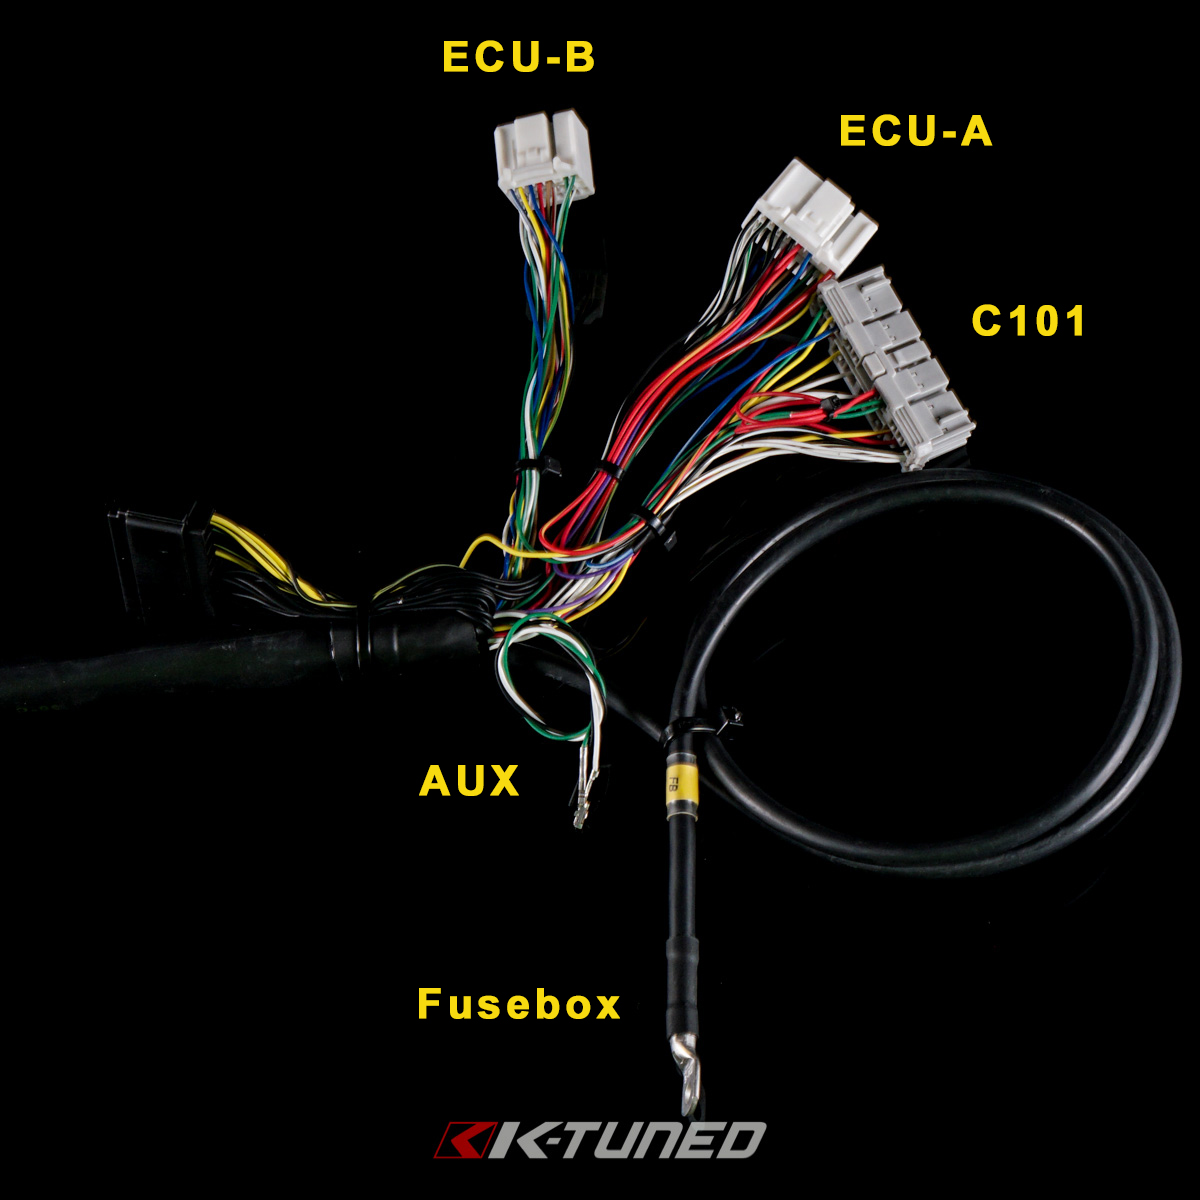 KTH 204 ENG_017 k series tucked engine harness rsx tucked wire harness at bakdesigns.co